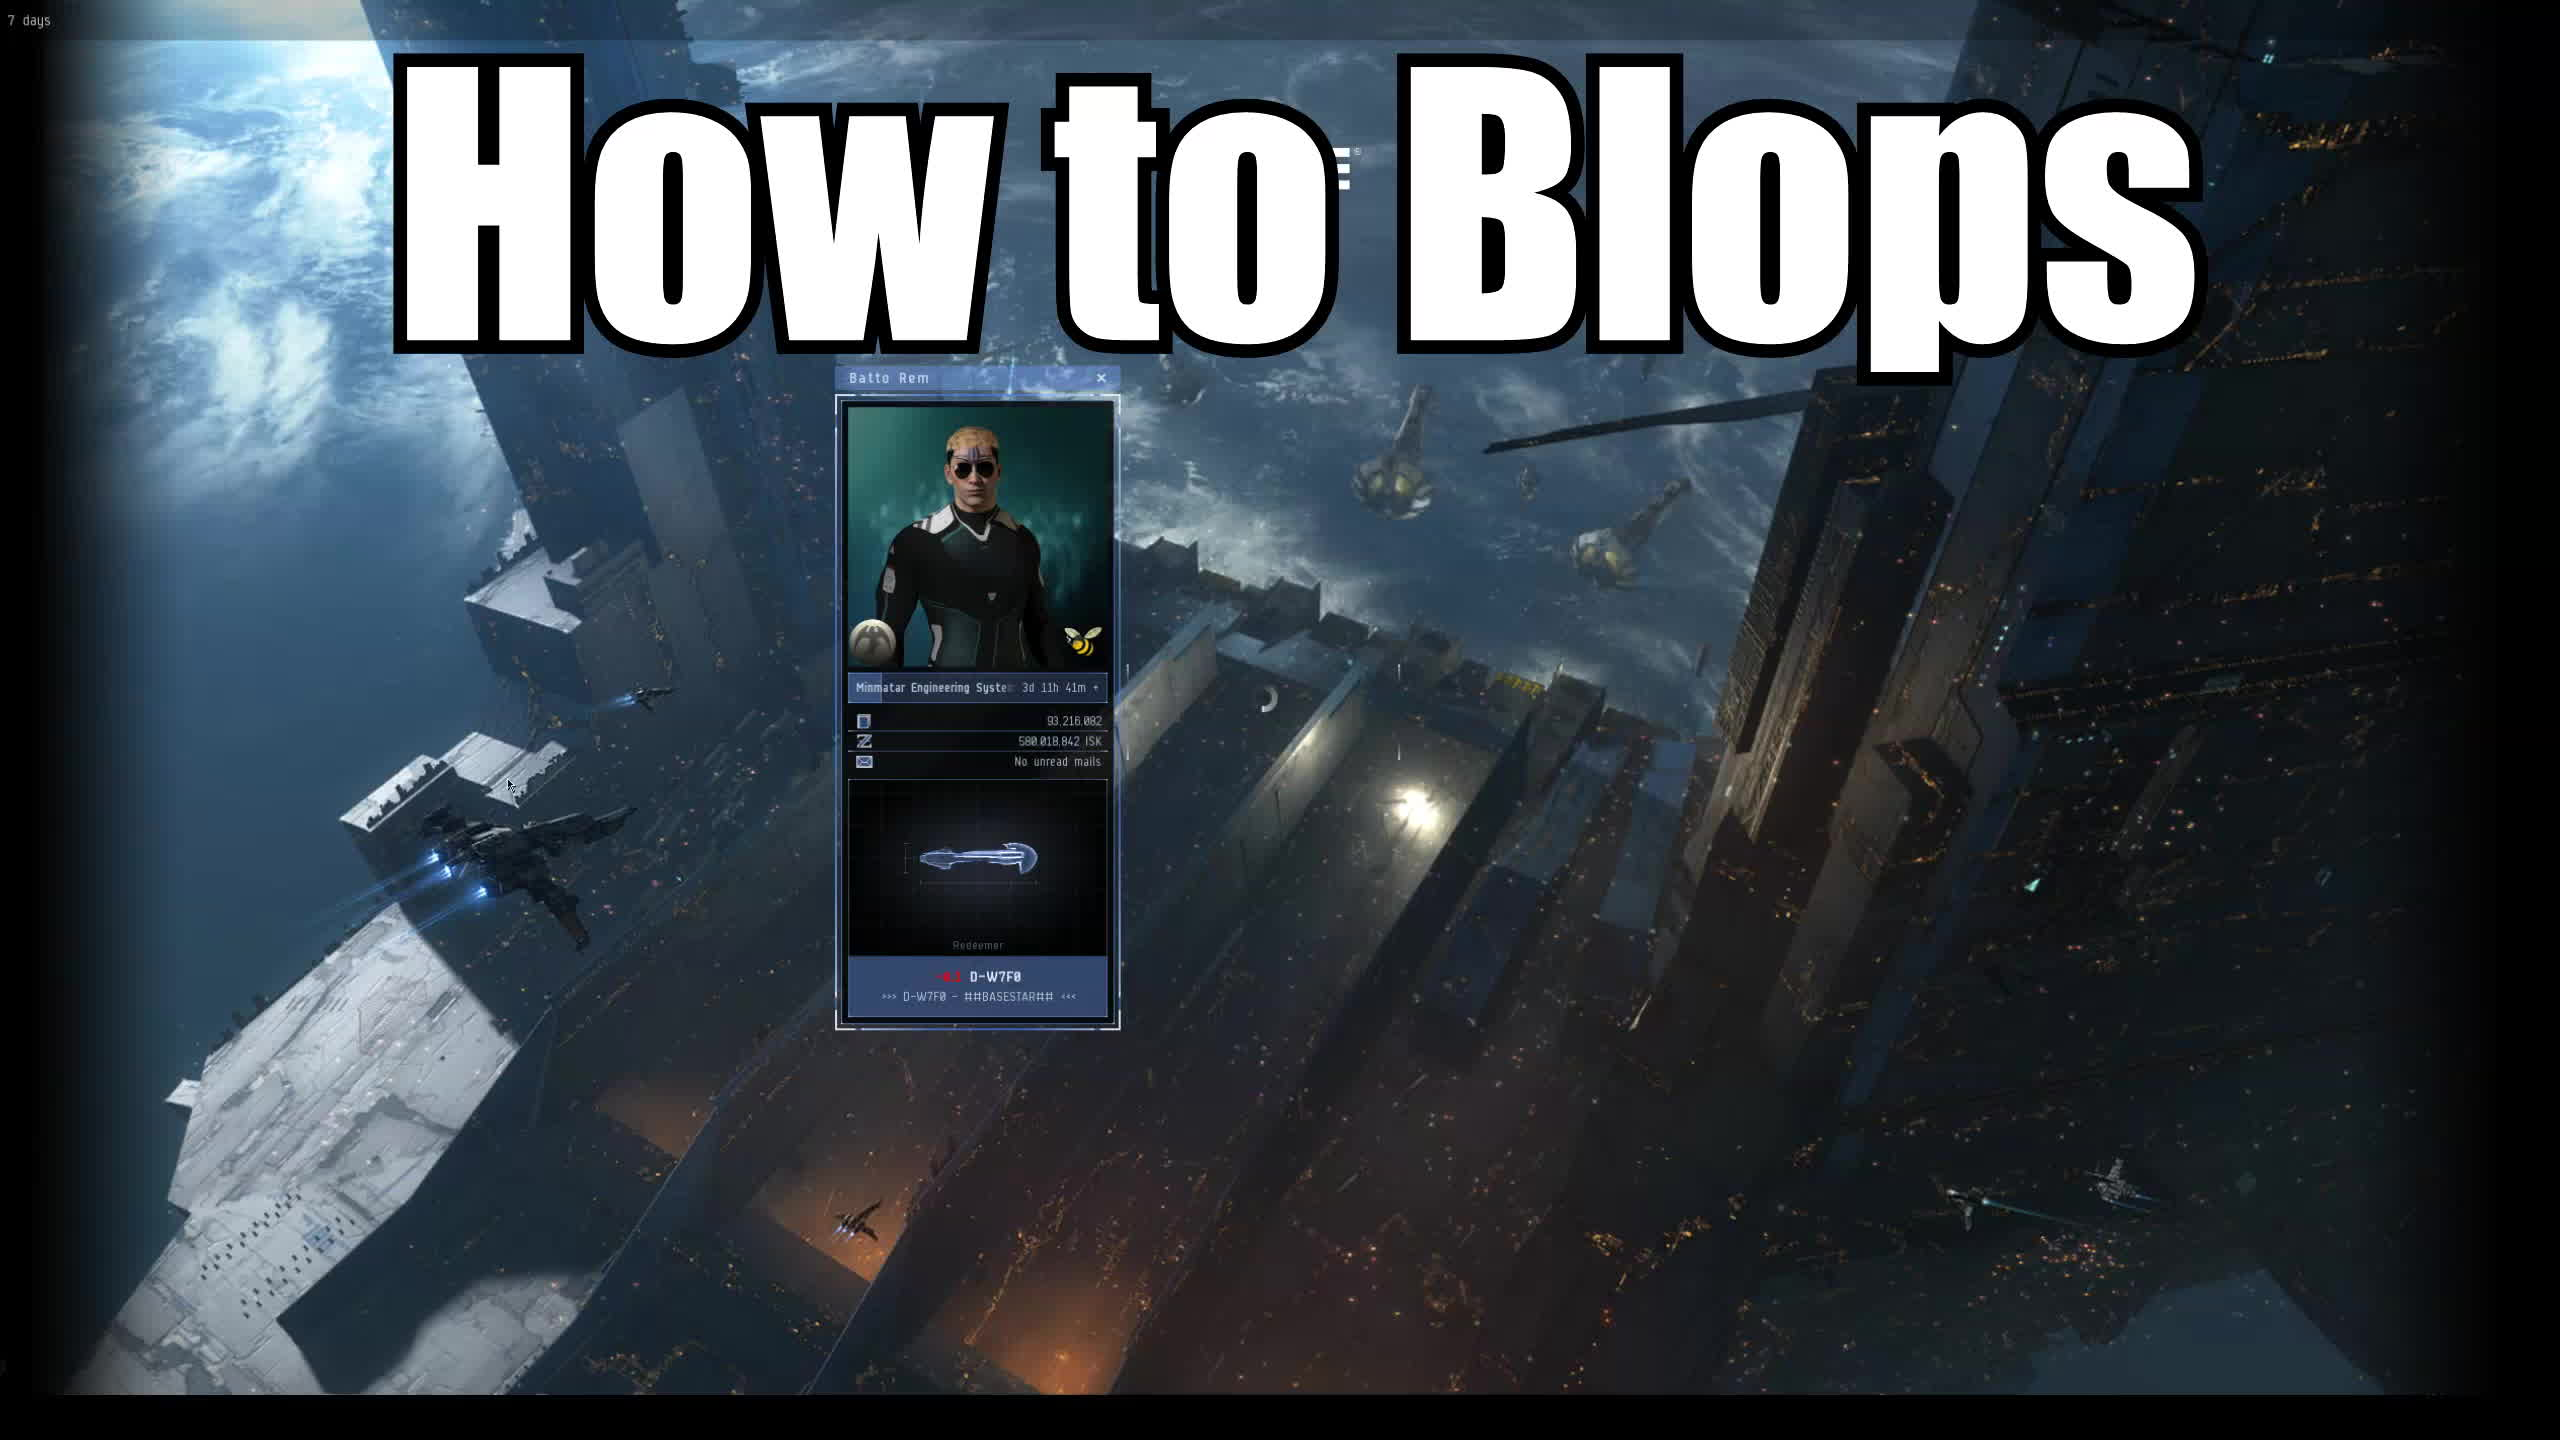 How To Blops GIFs